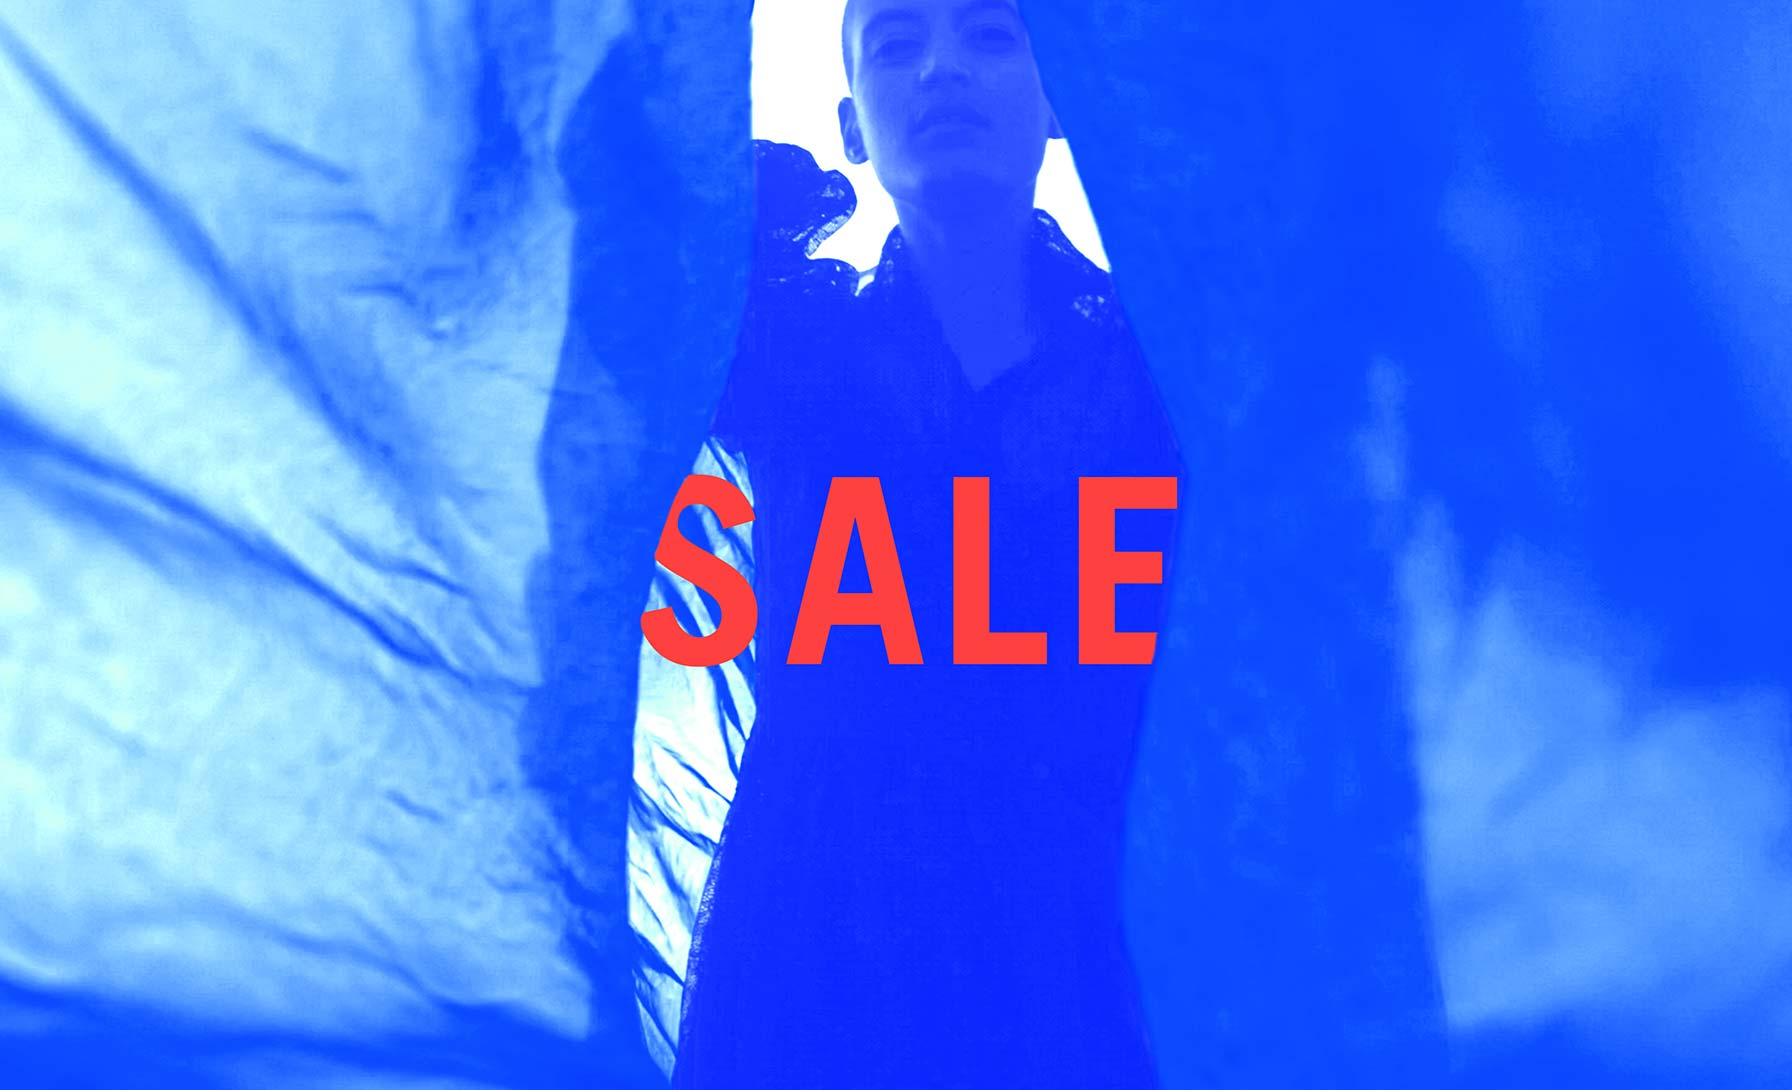 EXTRA20% ON SS20 SALE